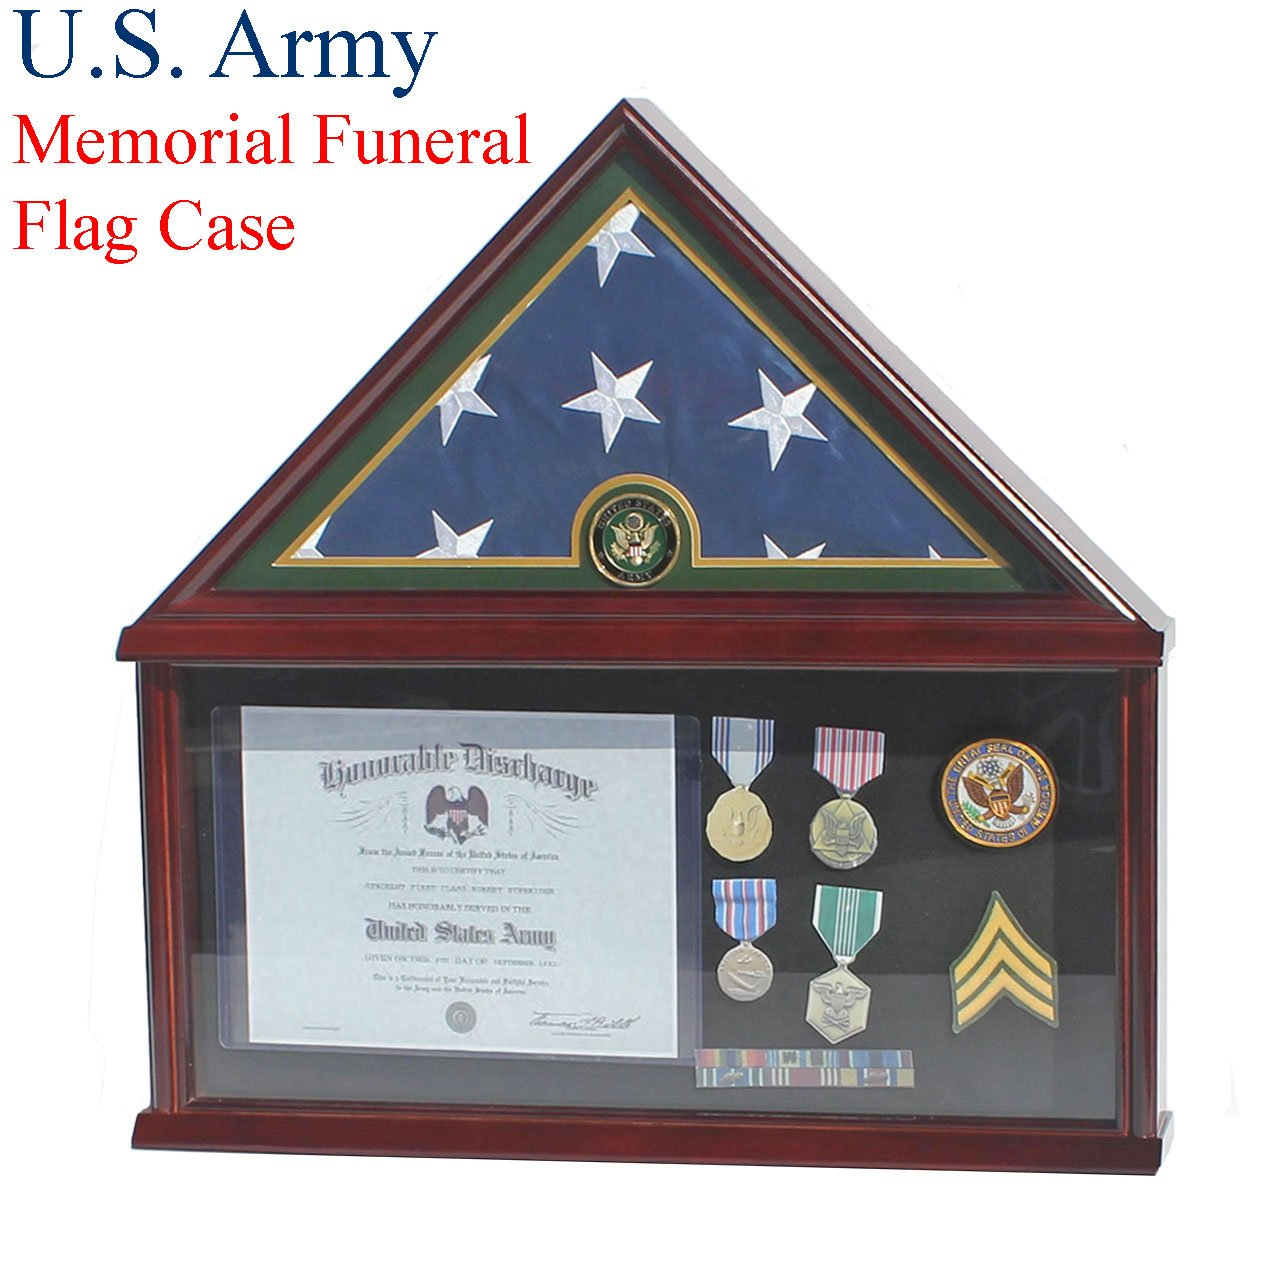 Elegant Memorial/Funeral Flag Display Case Storage Military Shadow Box, for 5'X9.5' flag folded, FC07-ARMY (with Army Medallion) by DisplayGifts